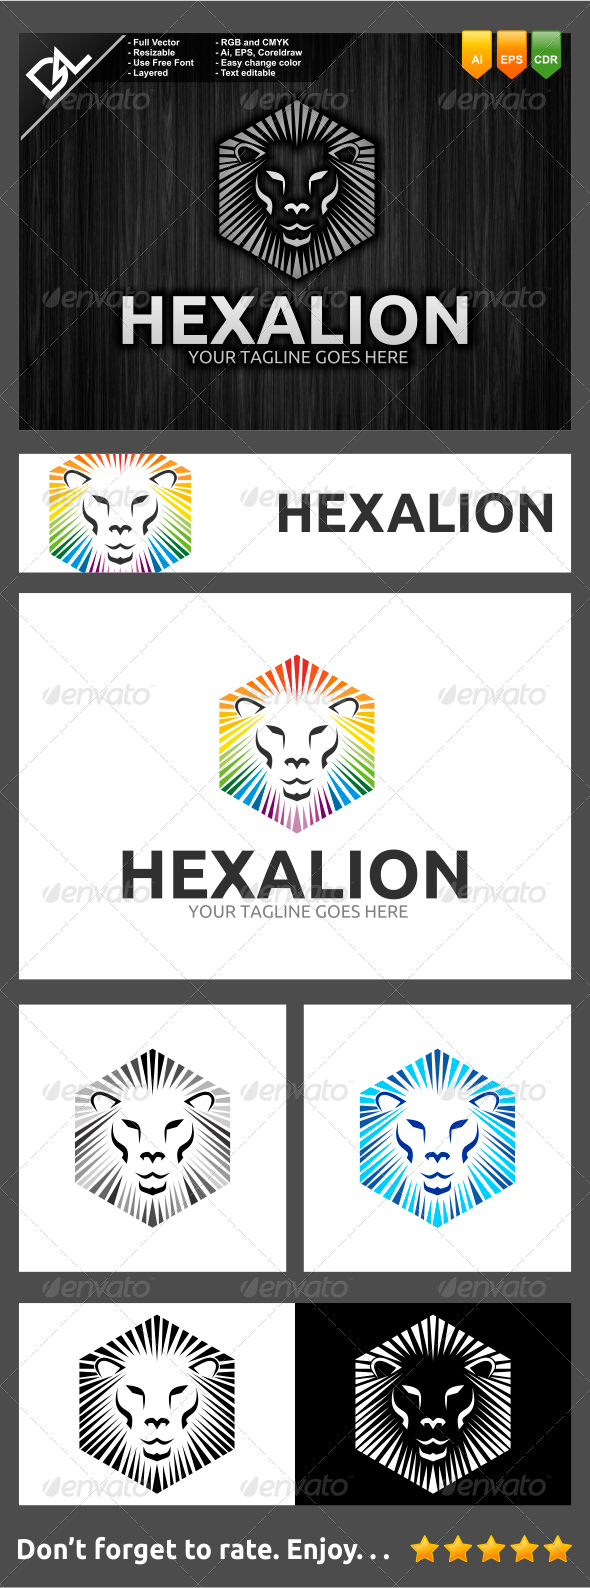 GraphicRiver Hexalion 7741695